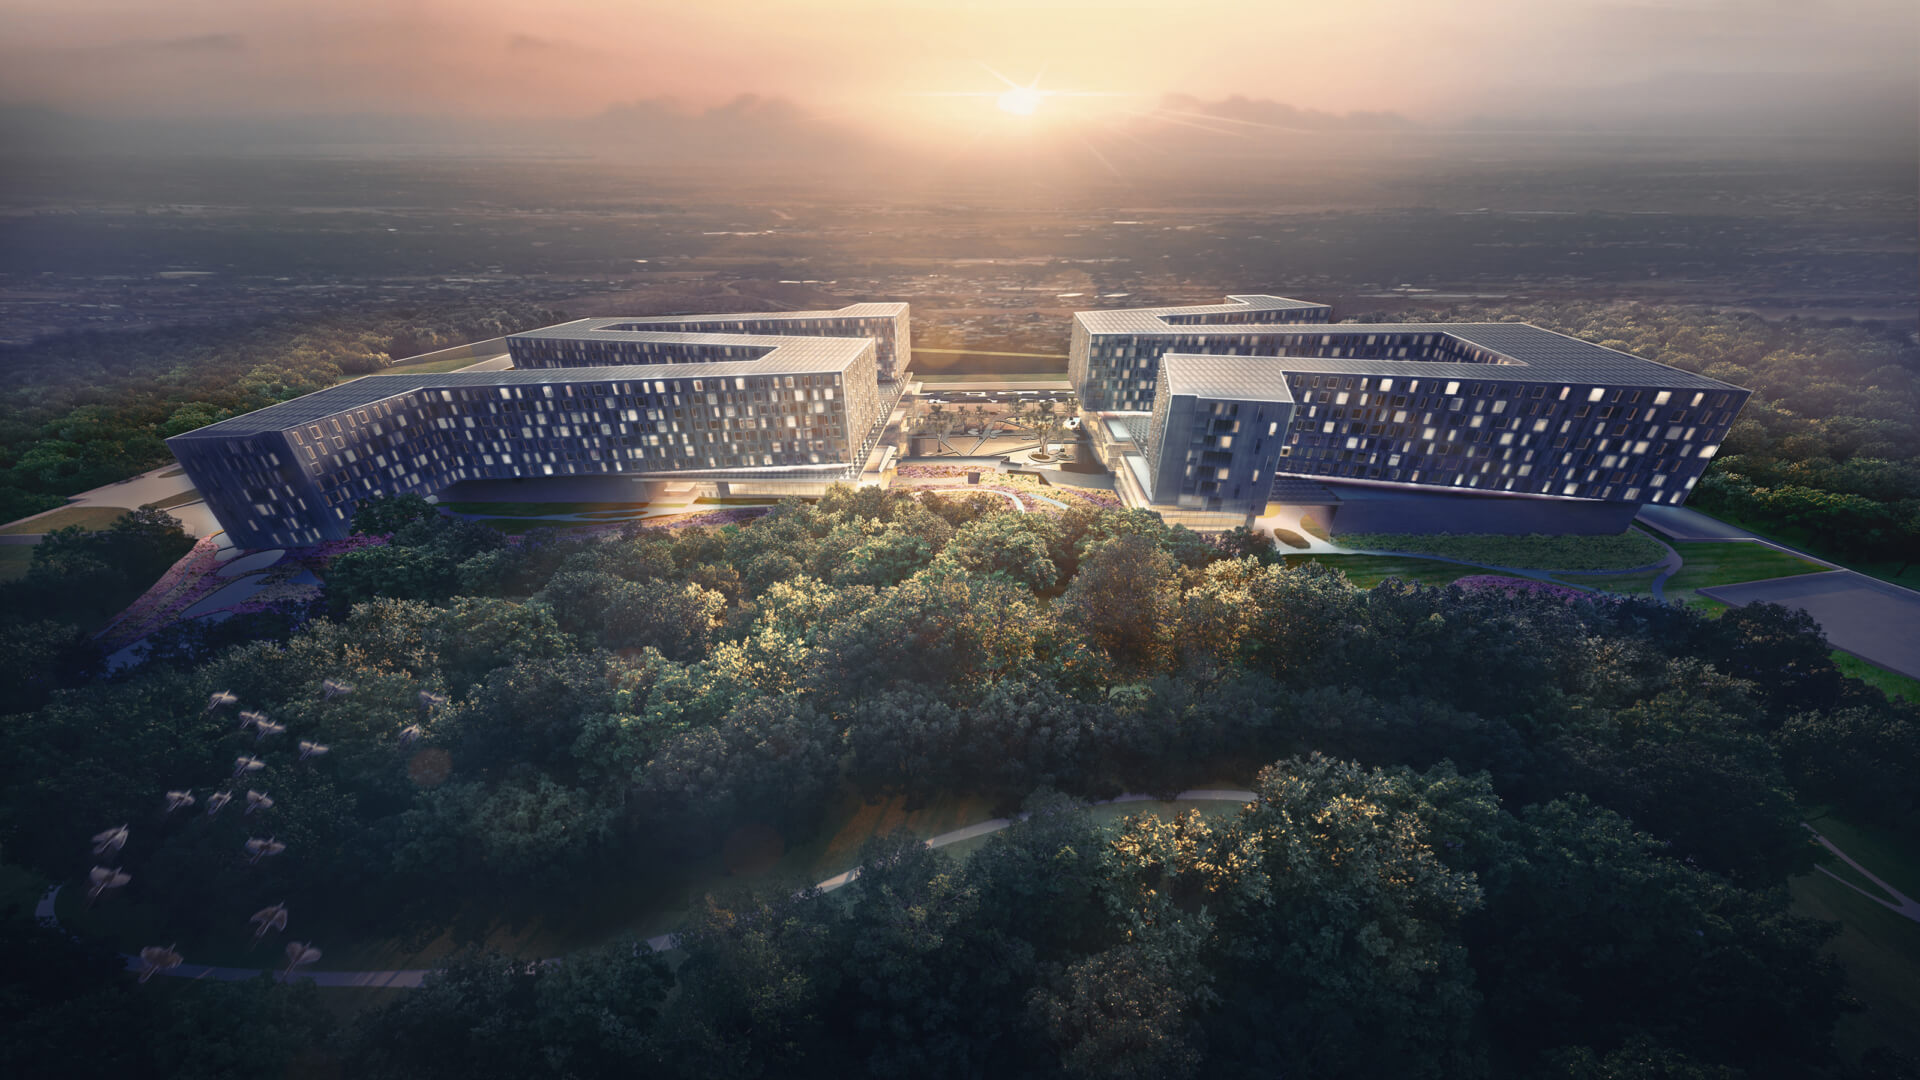 Medical City For Healing - XiangYa Hospital in China desifned by Payette